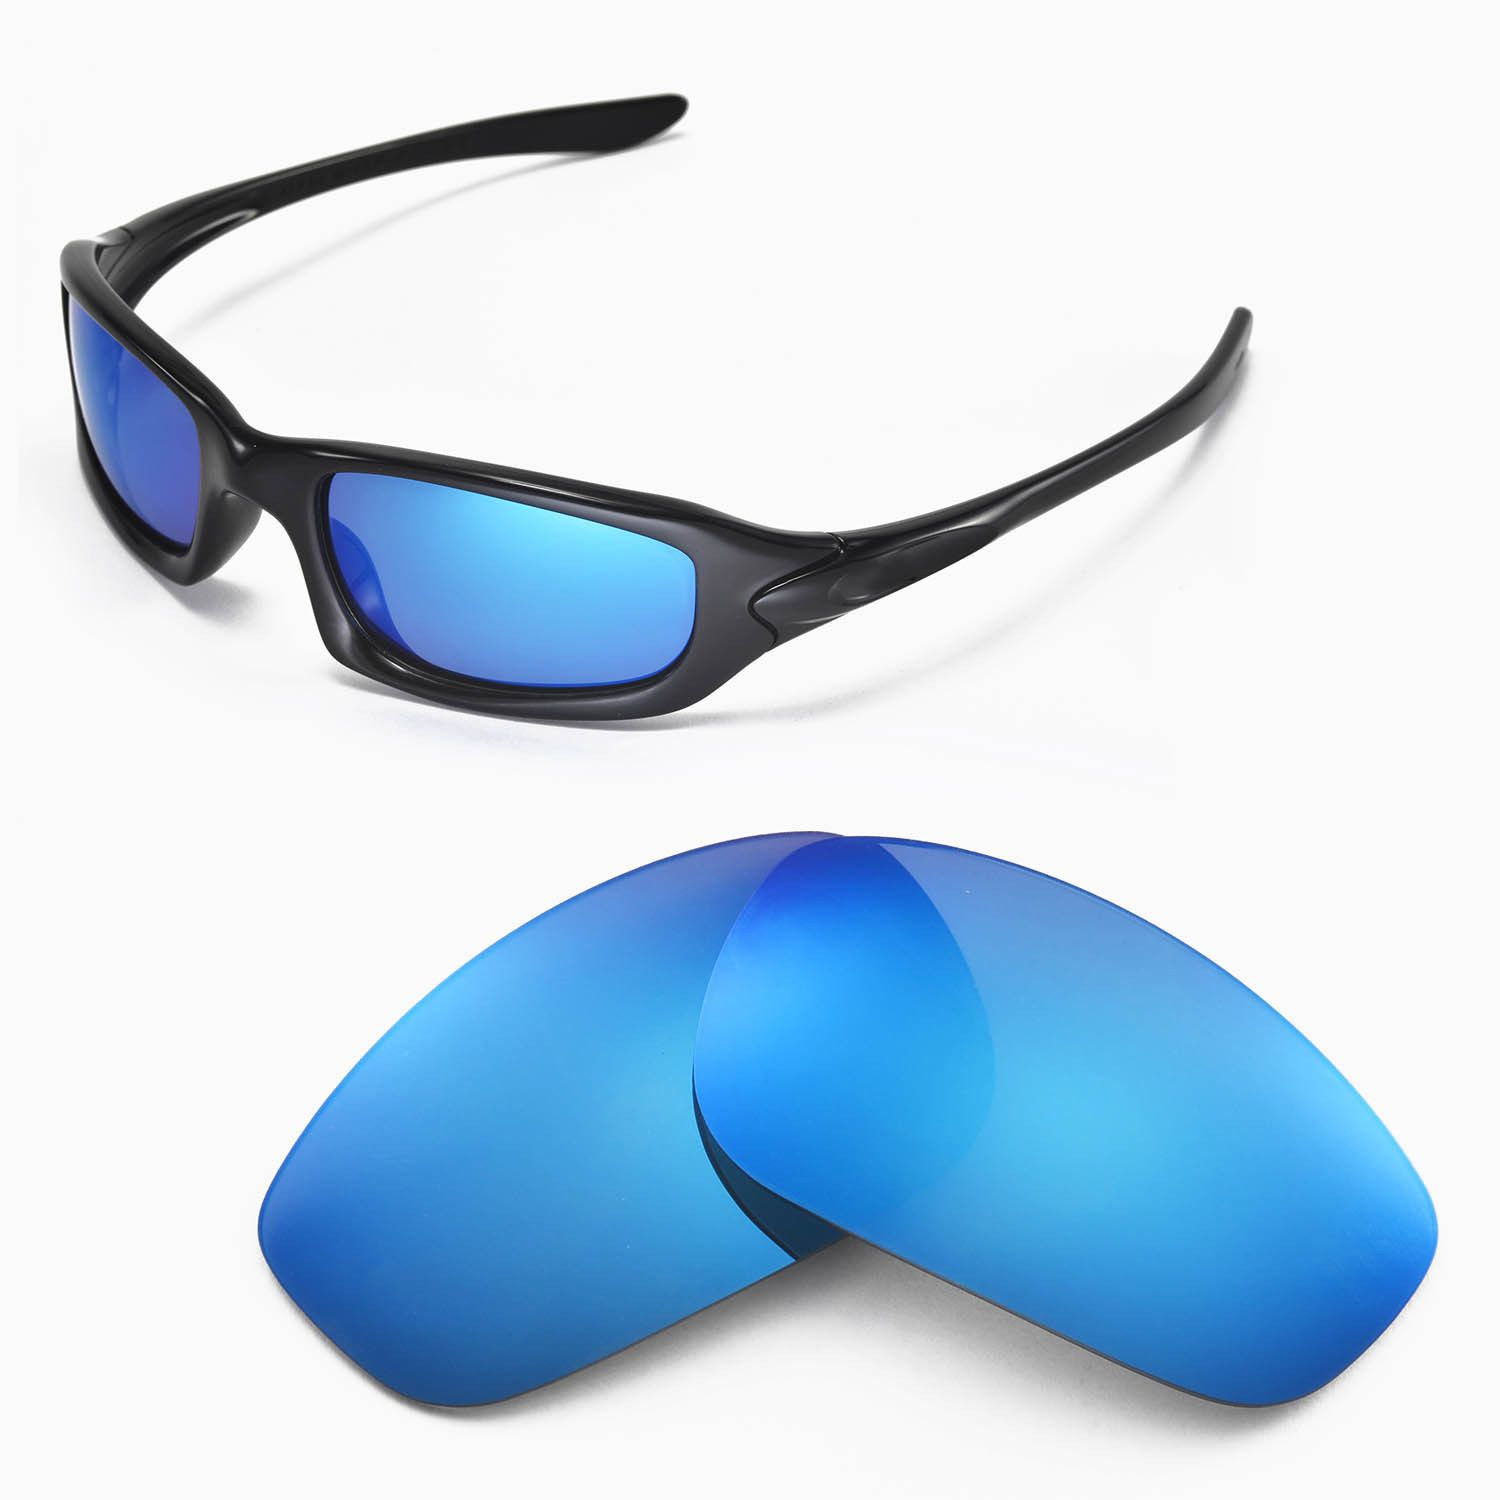 f5f5a89b2b Wl Polarized Ice Blue Replacement Lenses For Oakley Fives 4.0 Sunglasses